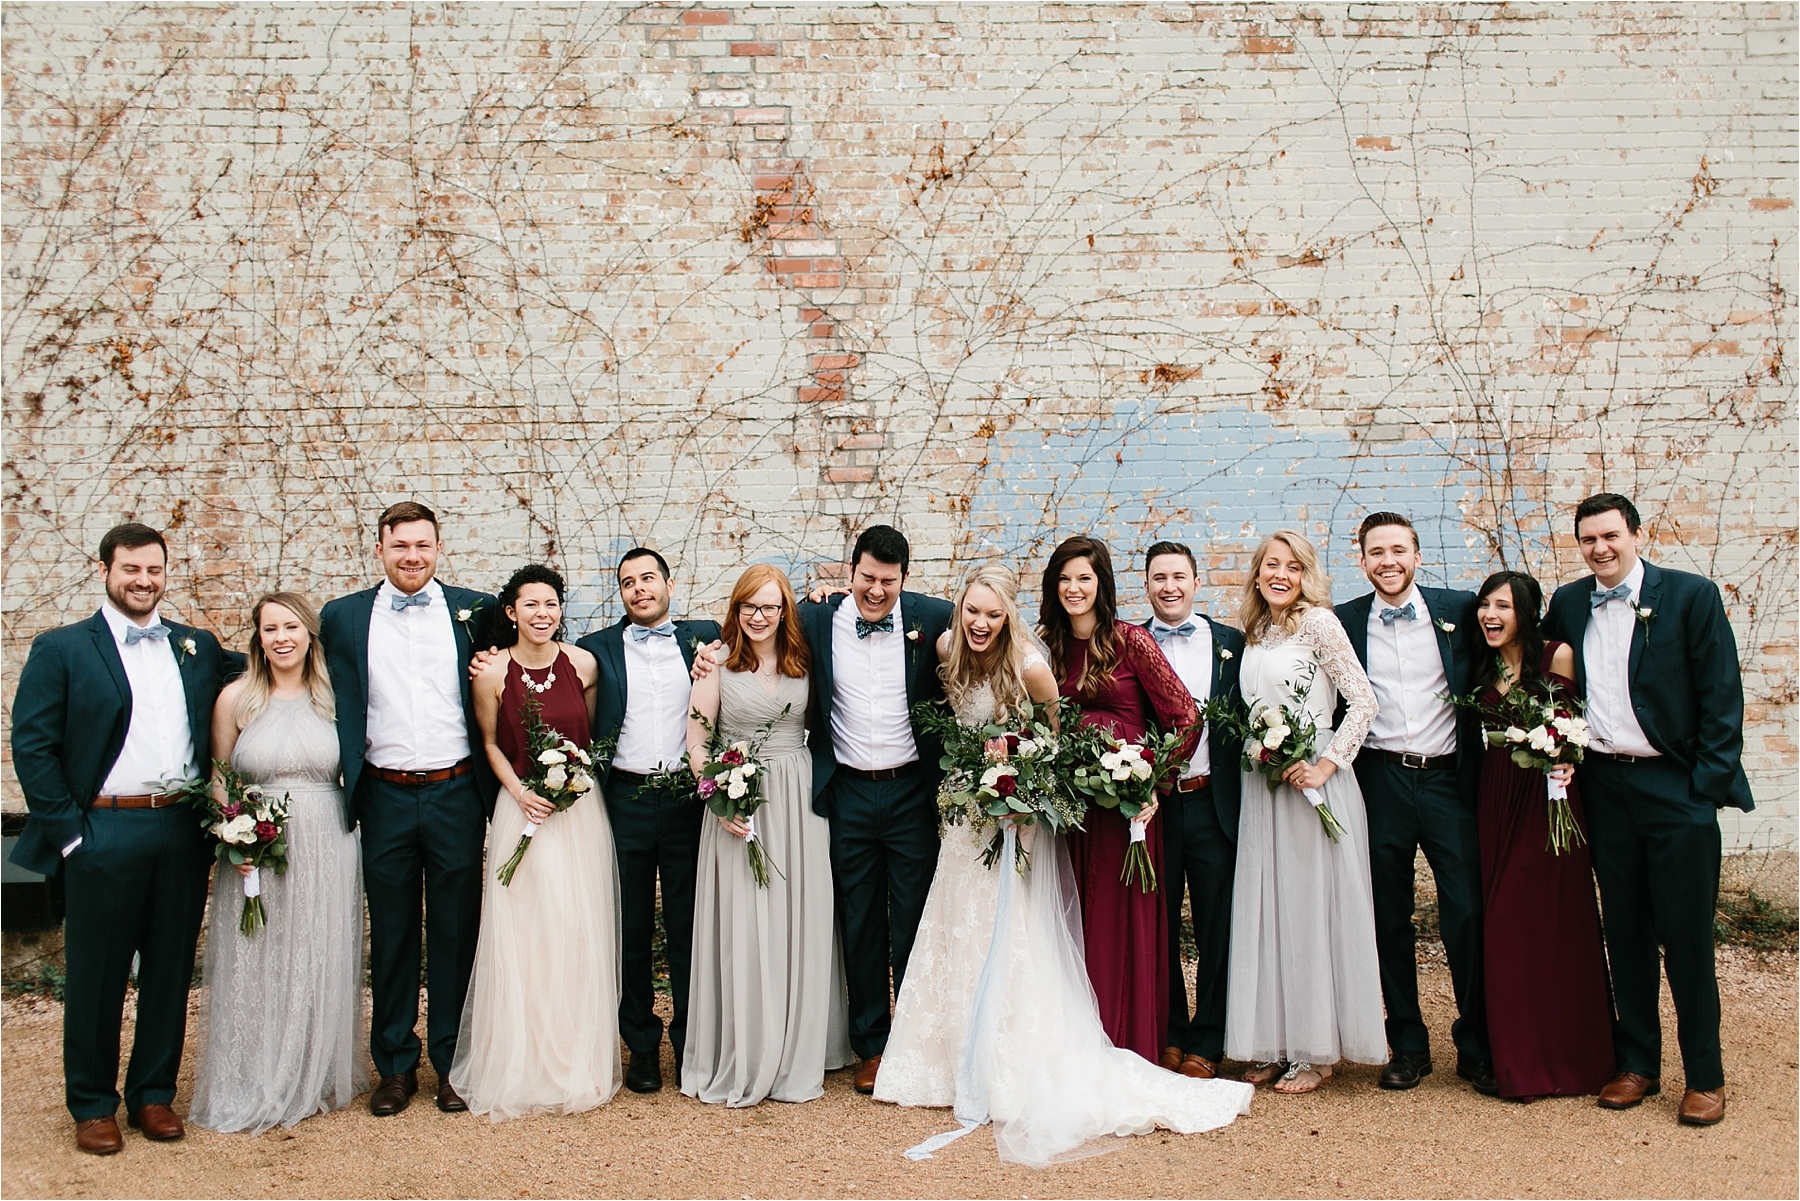 an organic, romantic, whimsical wedding at Brik Venue with Blue Grey, Burgandy, and pops of navy gold + white accents by North Texas Wedding Photographer Rachel Meagan Photography __ 229